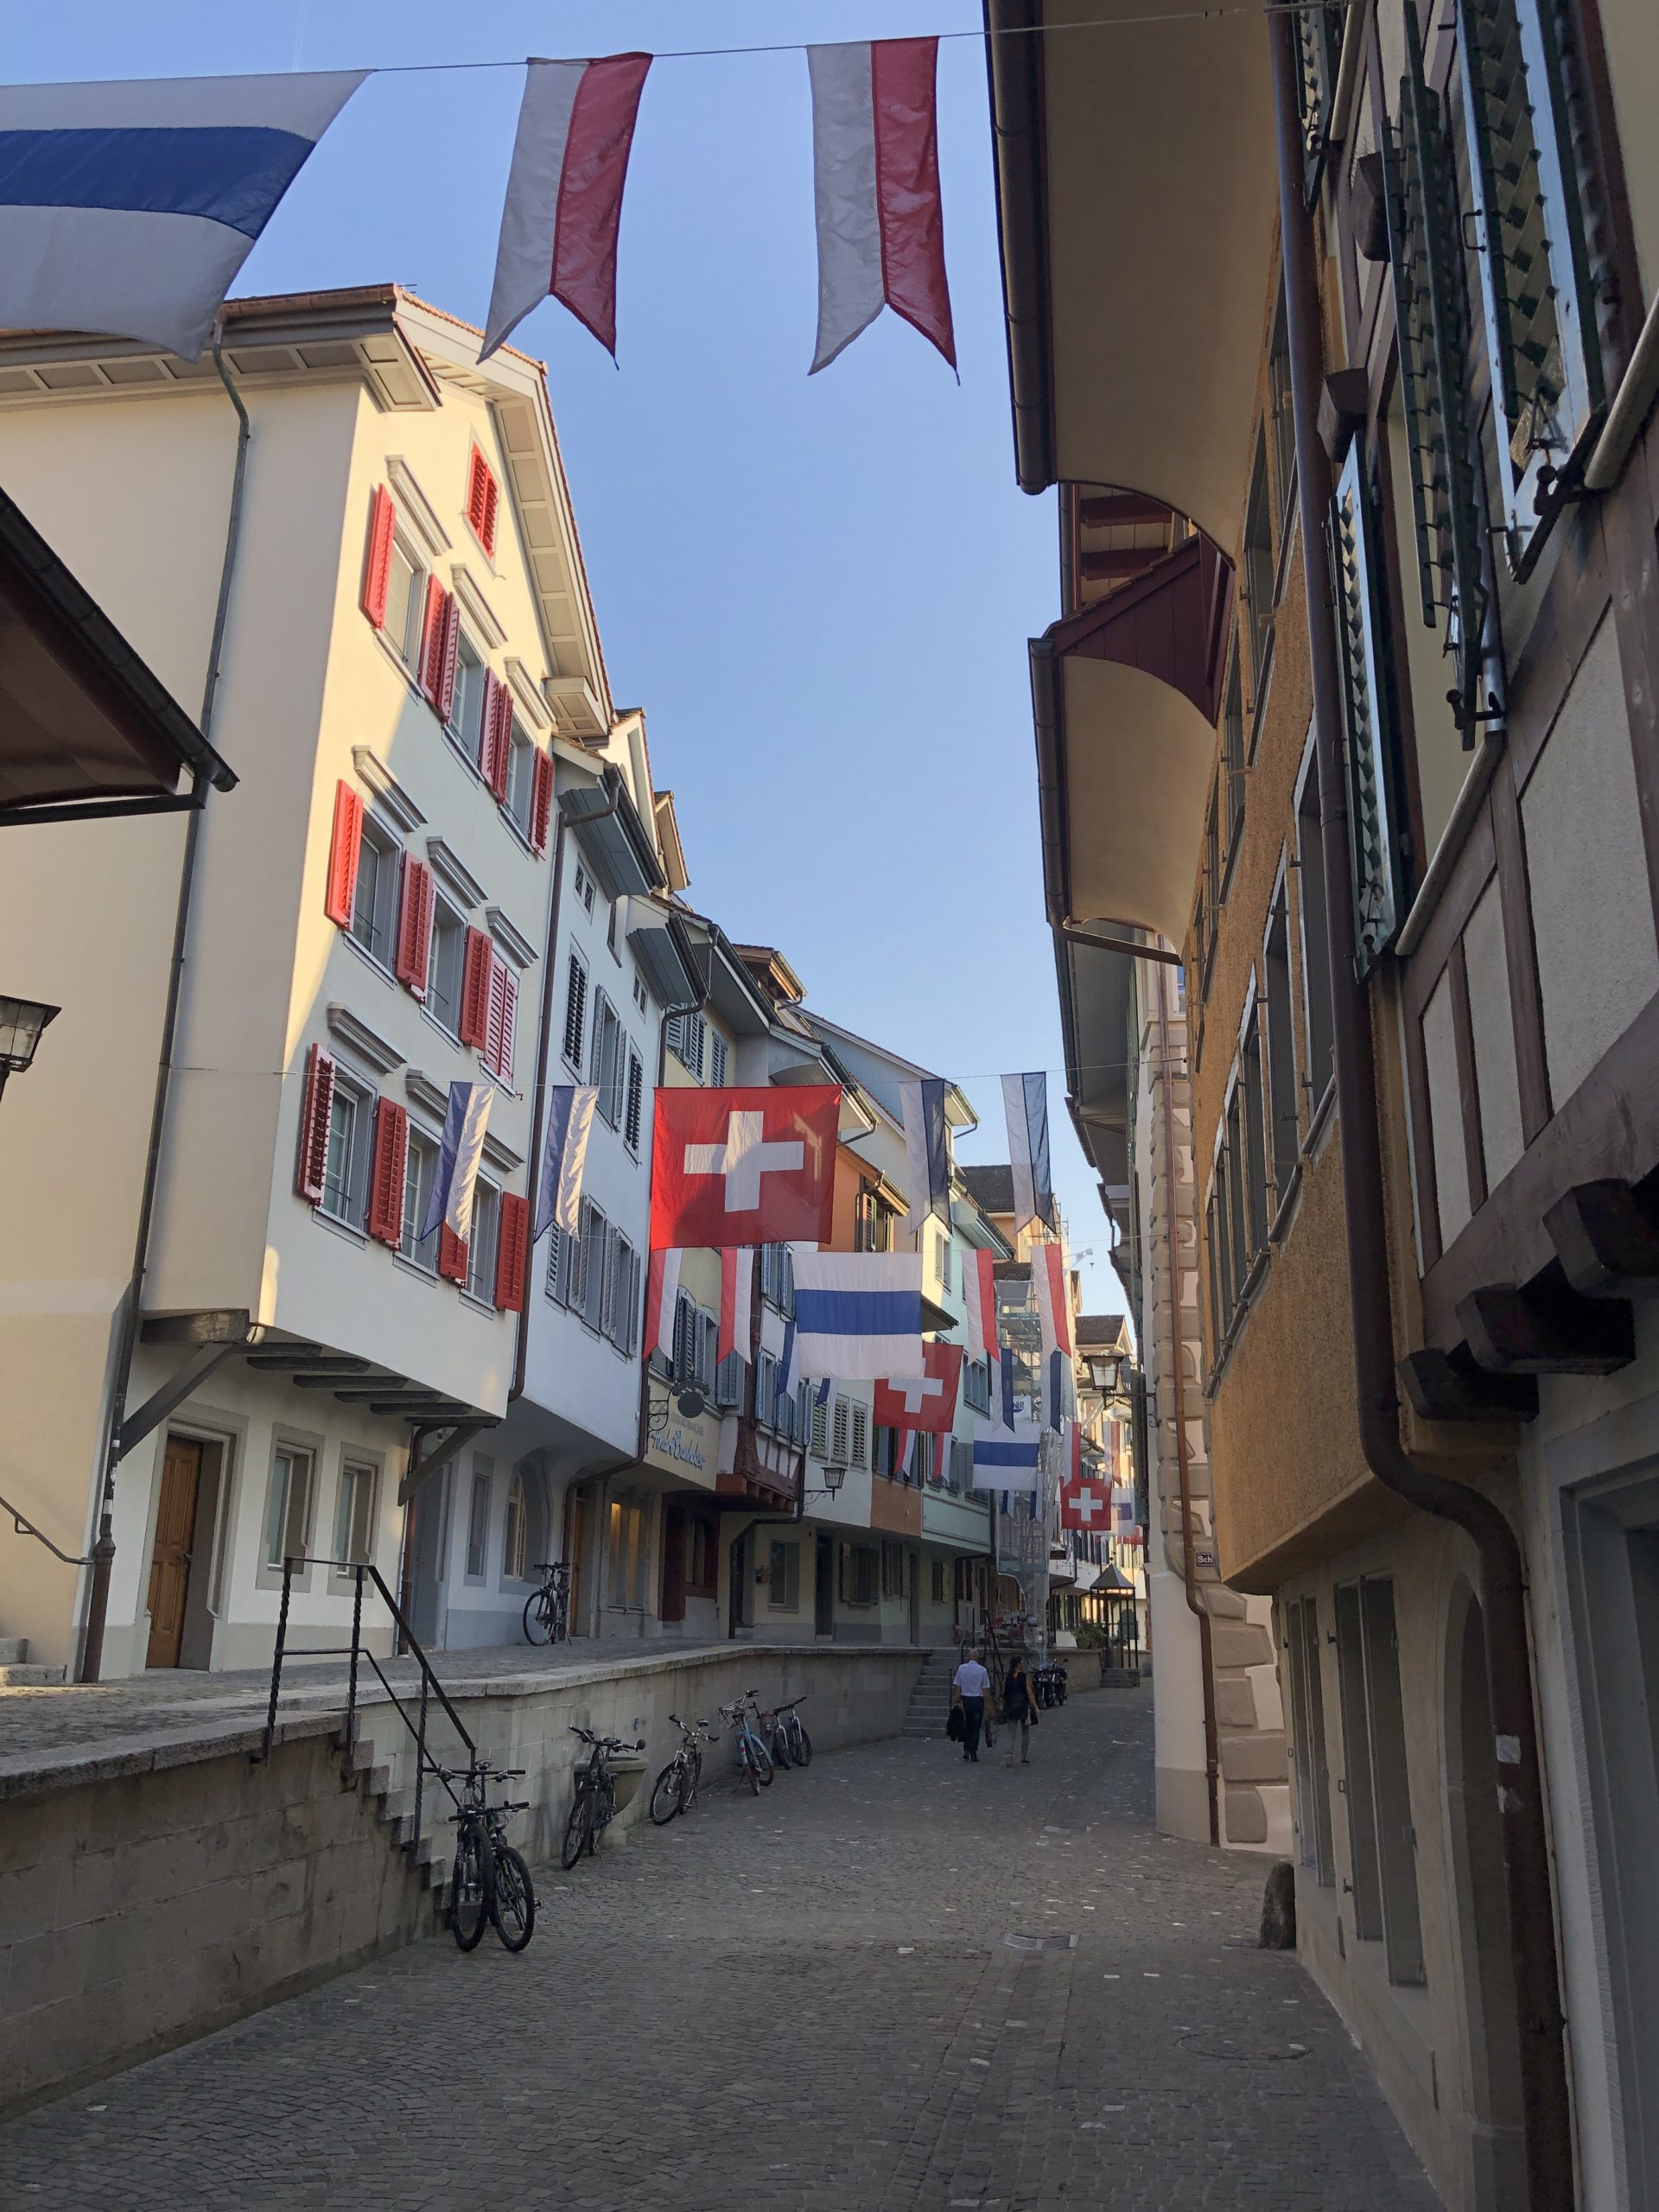 Zug street of shop